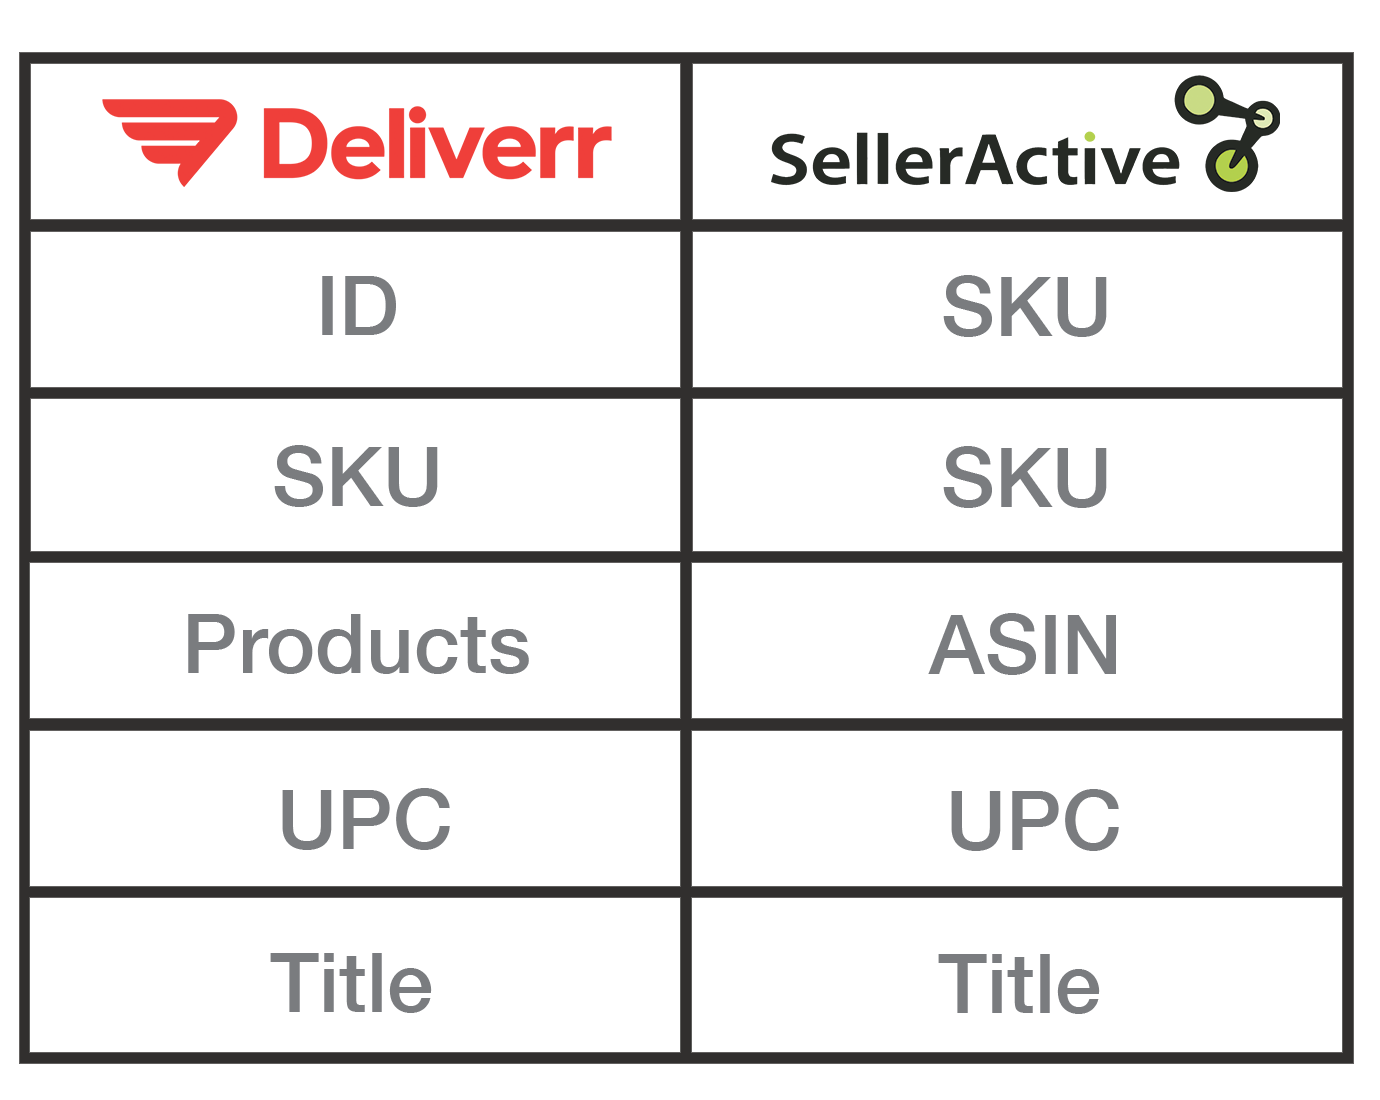 Product Mapping Deliverr SA